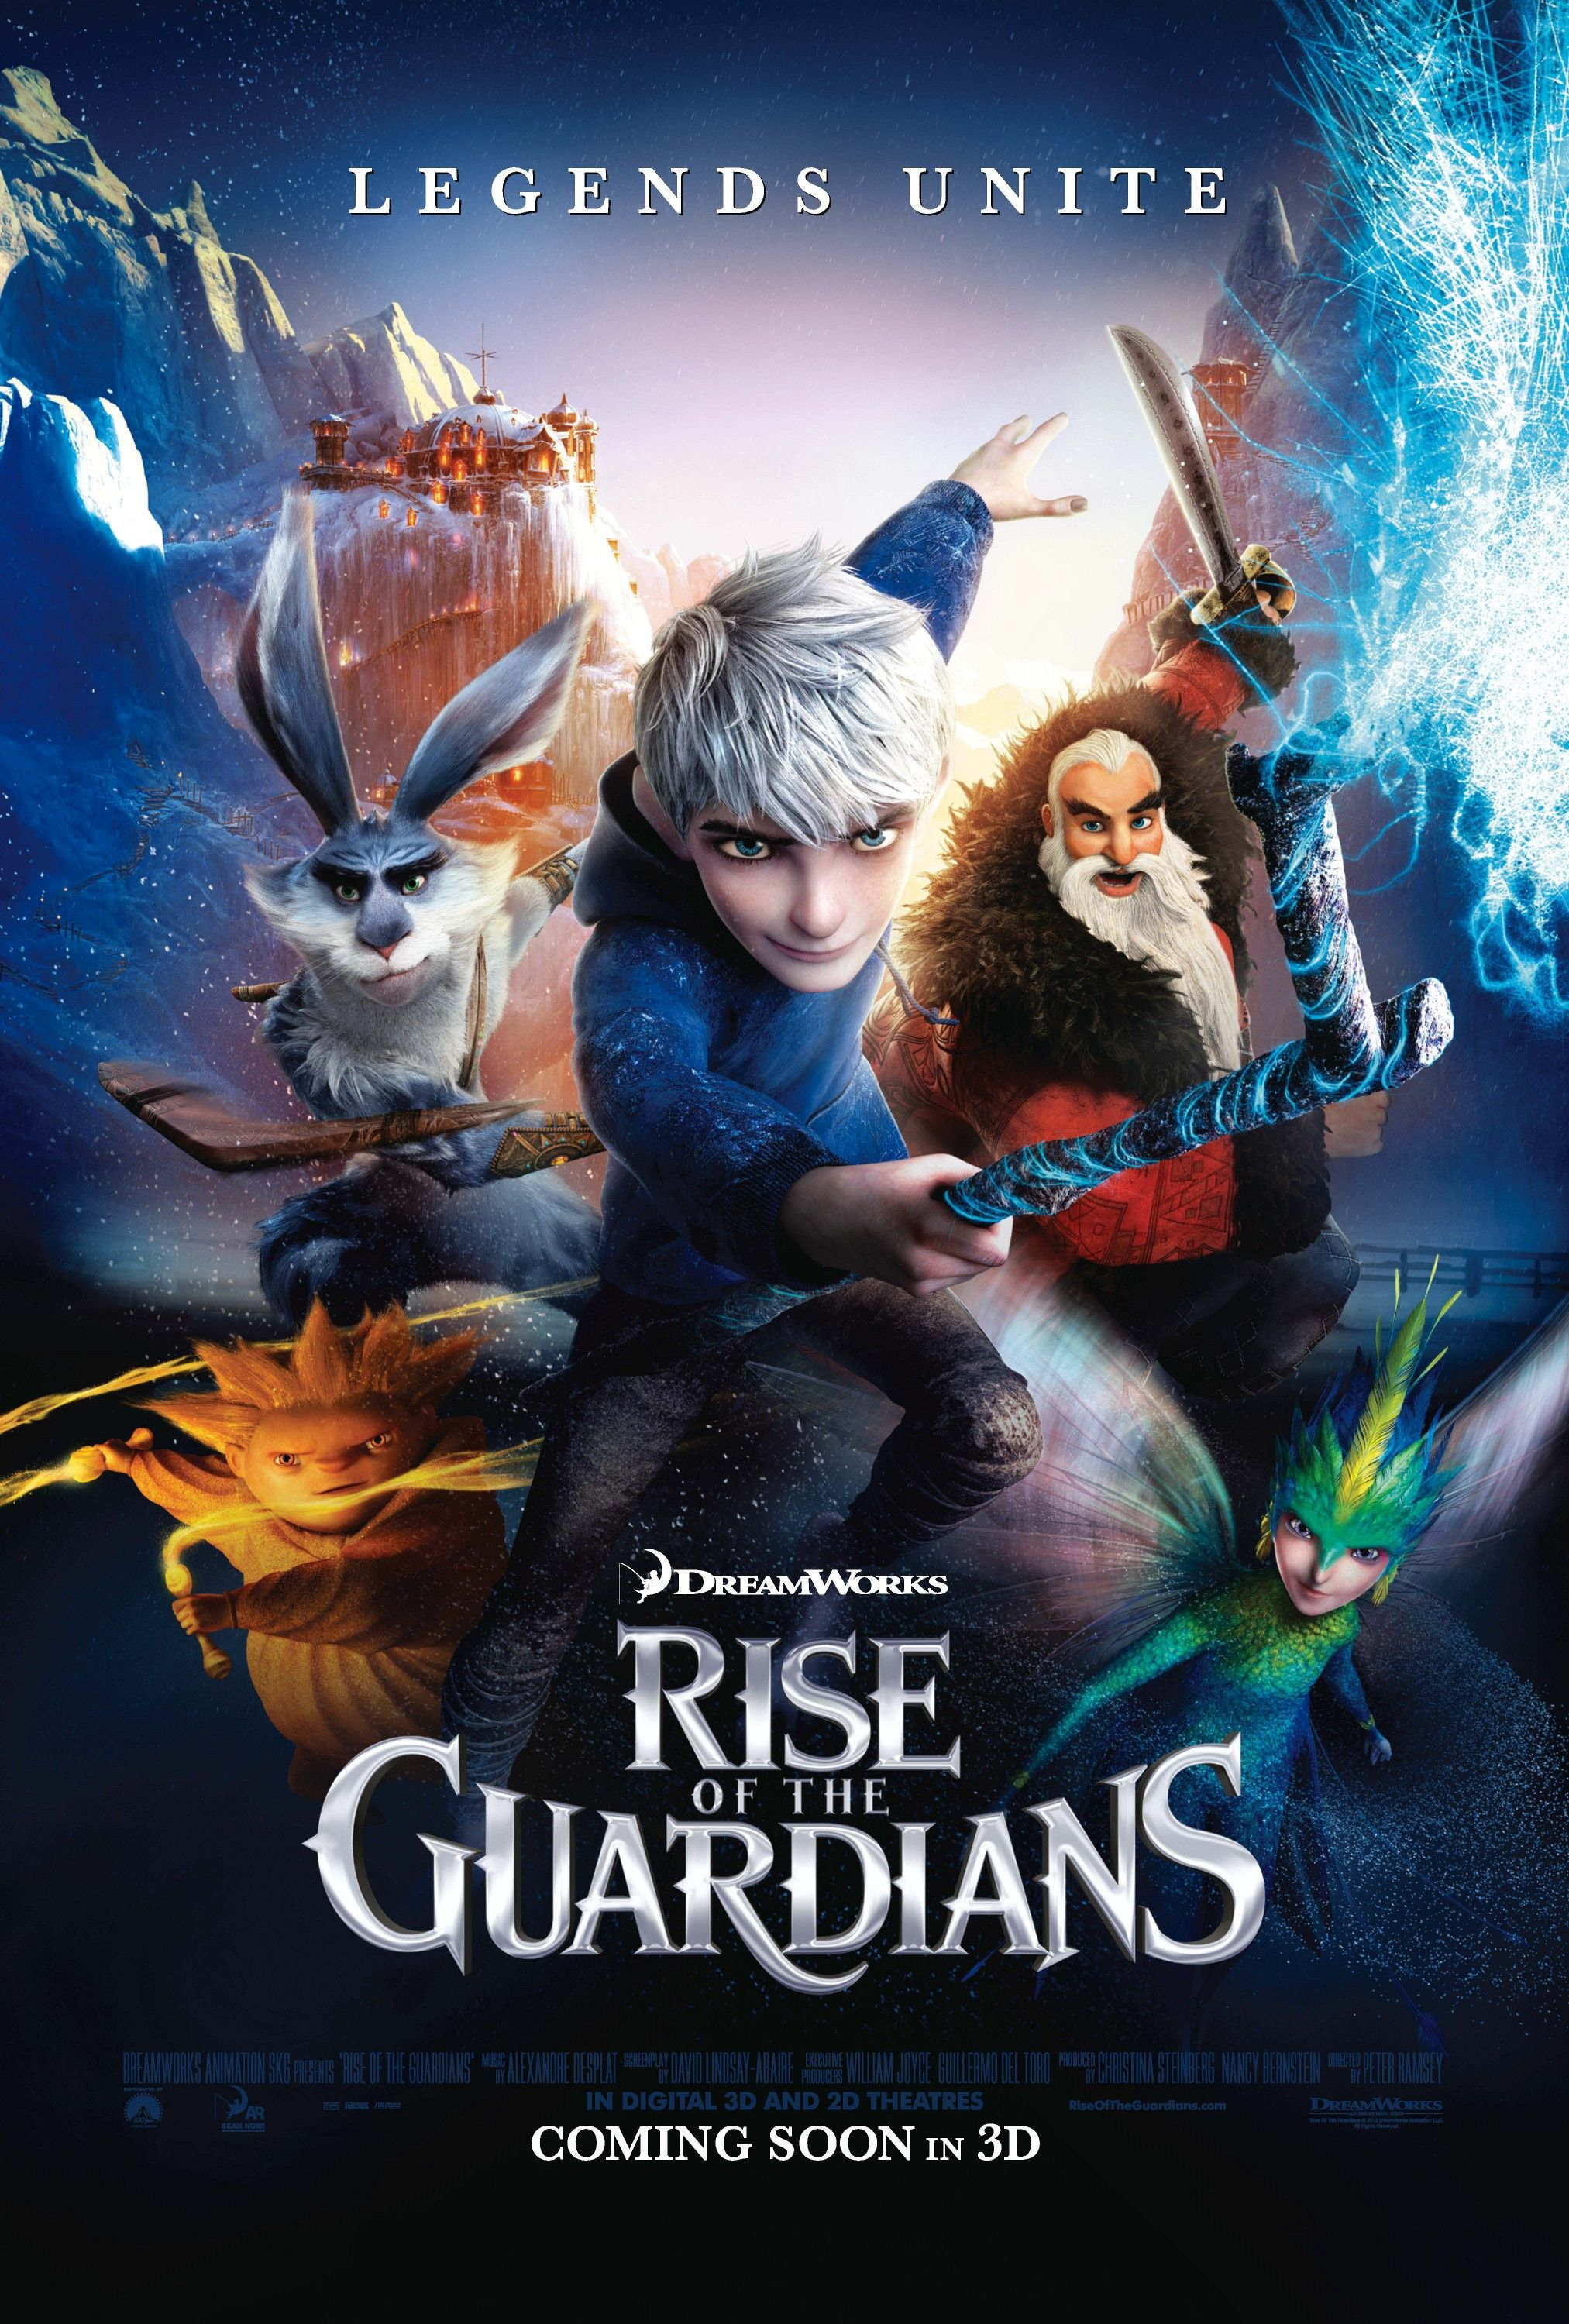 rise of the guardians review rise of the guardians stars chris pine